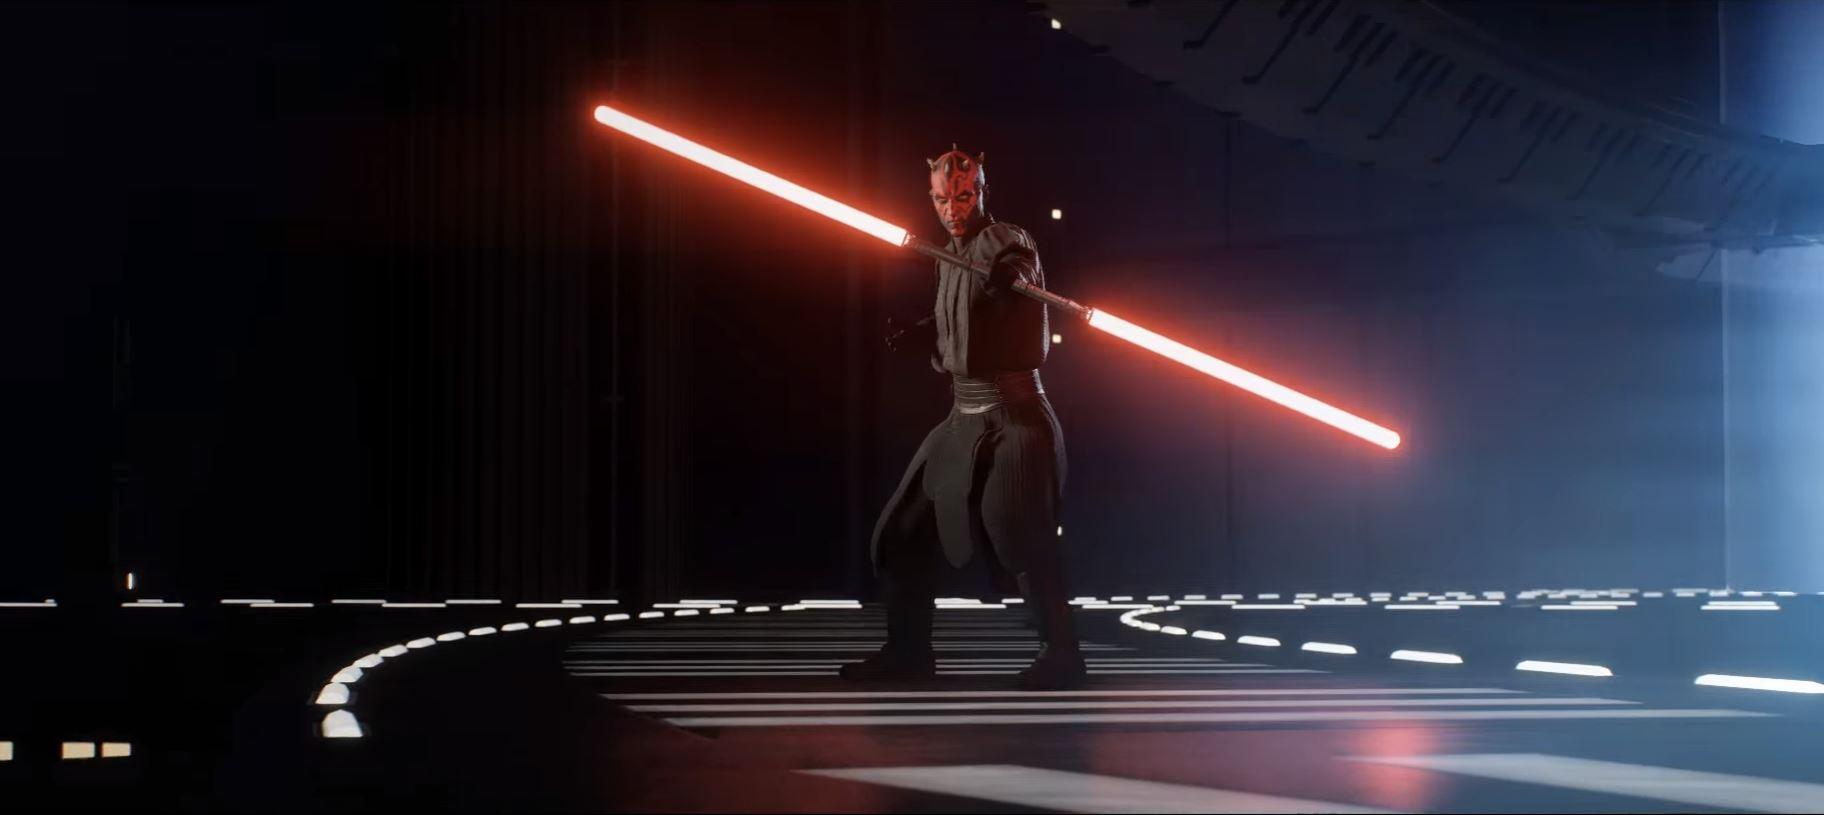 darth maul multiplayer battlefront ii trailer star wars